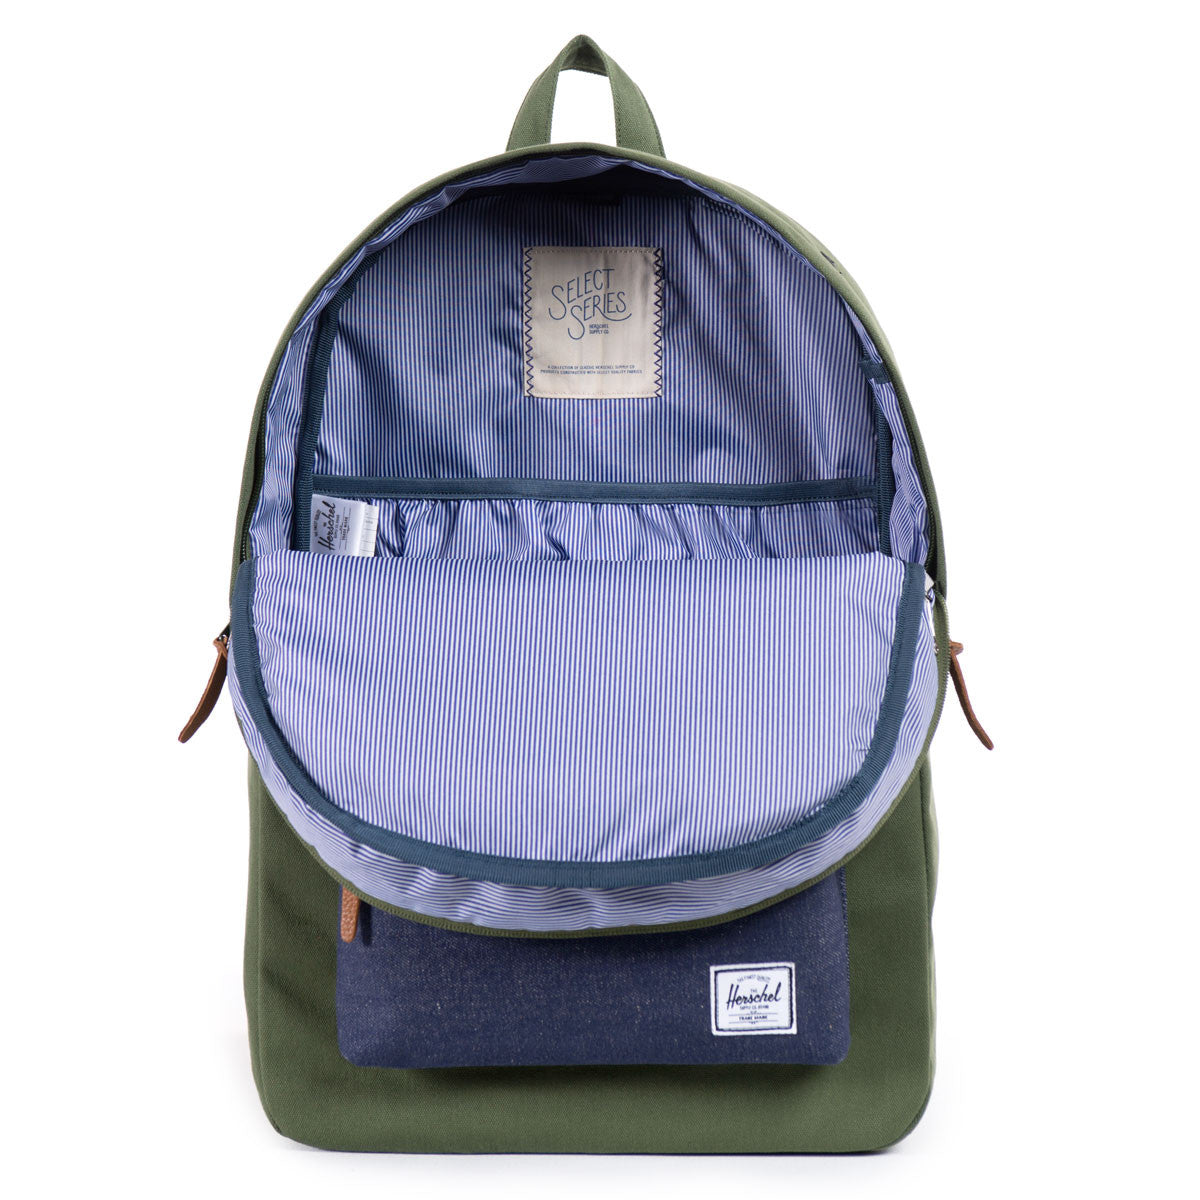 Herschel Supply Co.: Heritage Backpack - Army Coated Cotton Canvas / Indigo Denim (Select Series) open